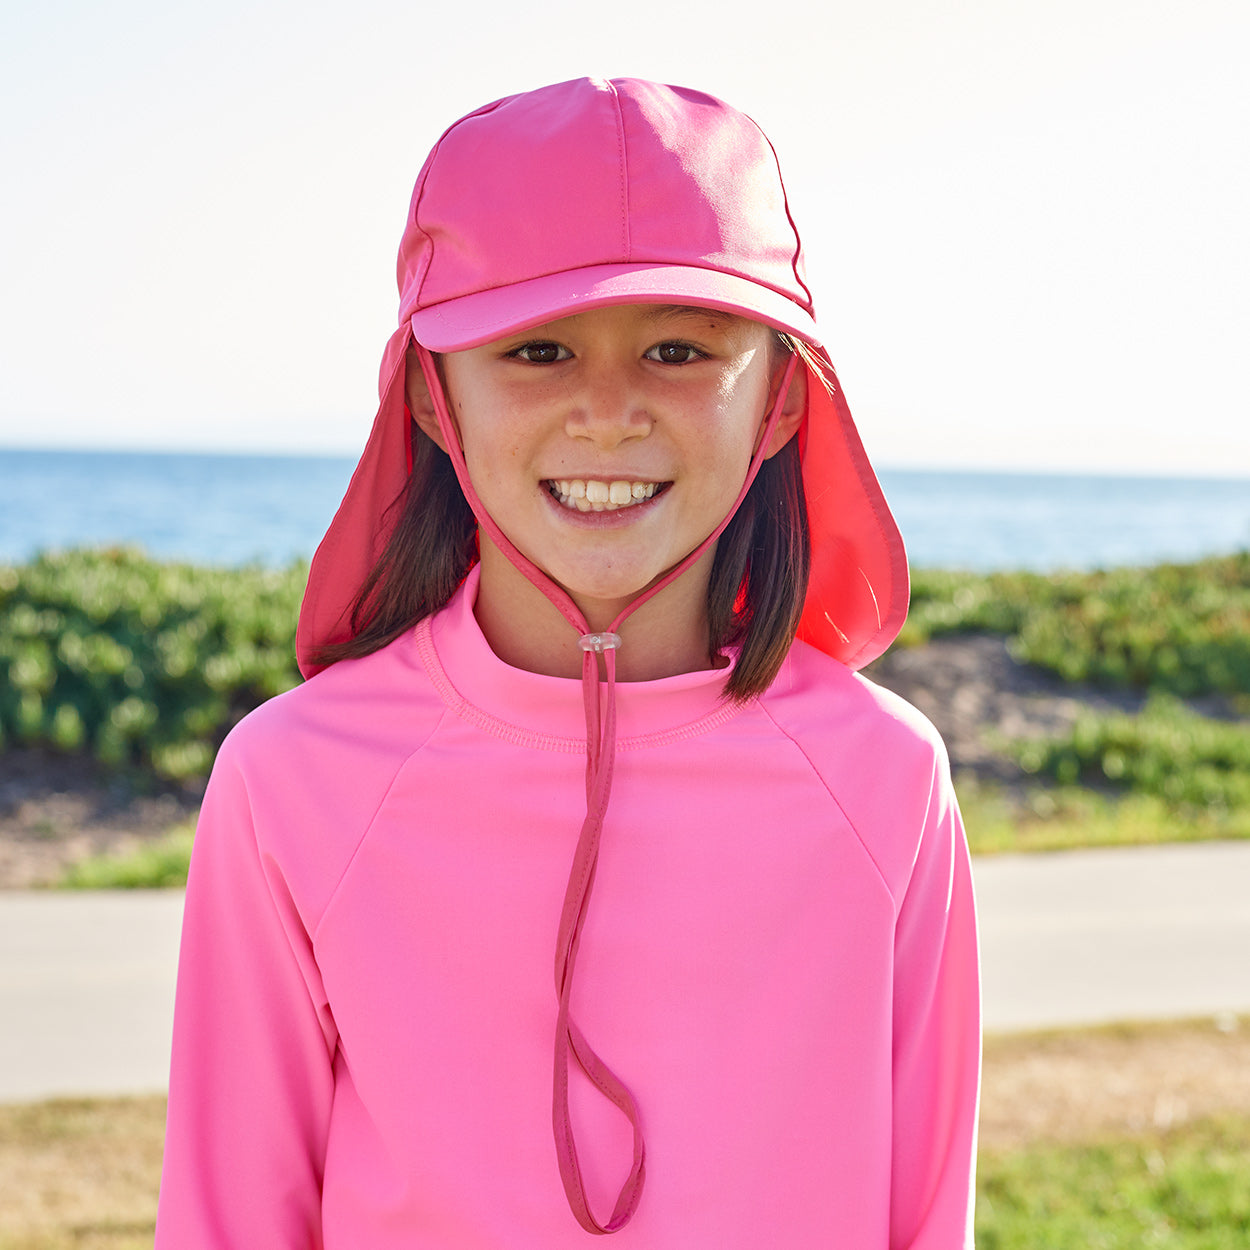 Girls Pink Legionnaire Sun Hat Upf 50 Size S Xl Girl Smiling Wearing Pink Hat on the Side Walk Sunpoplife